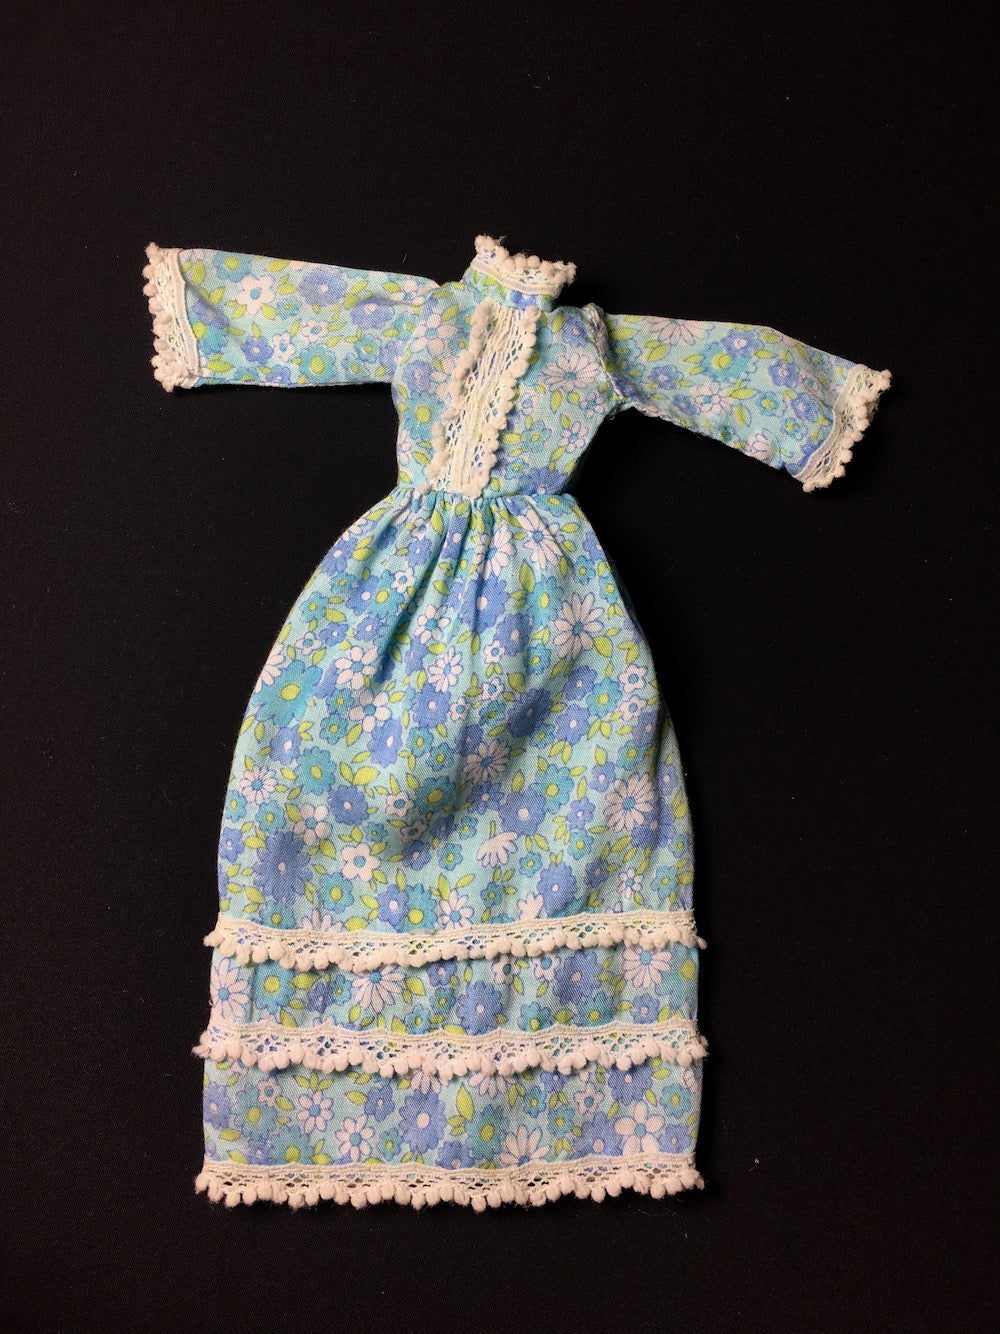 Sindy Bridesmaid dress 1973 Pedigree S209 pale blue floral maxi